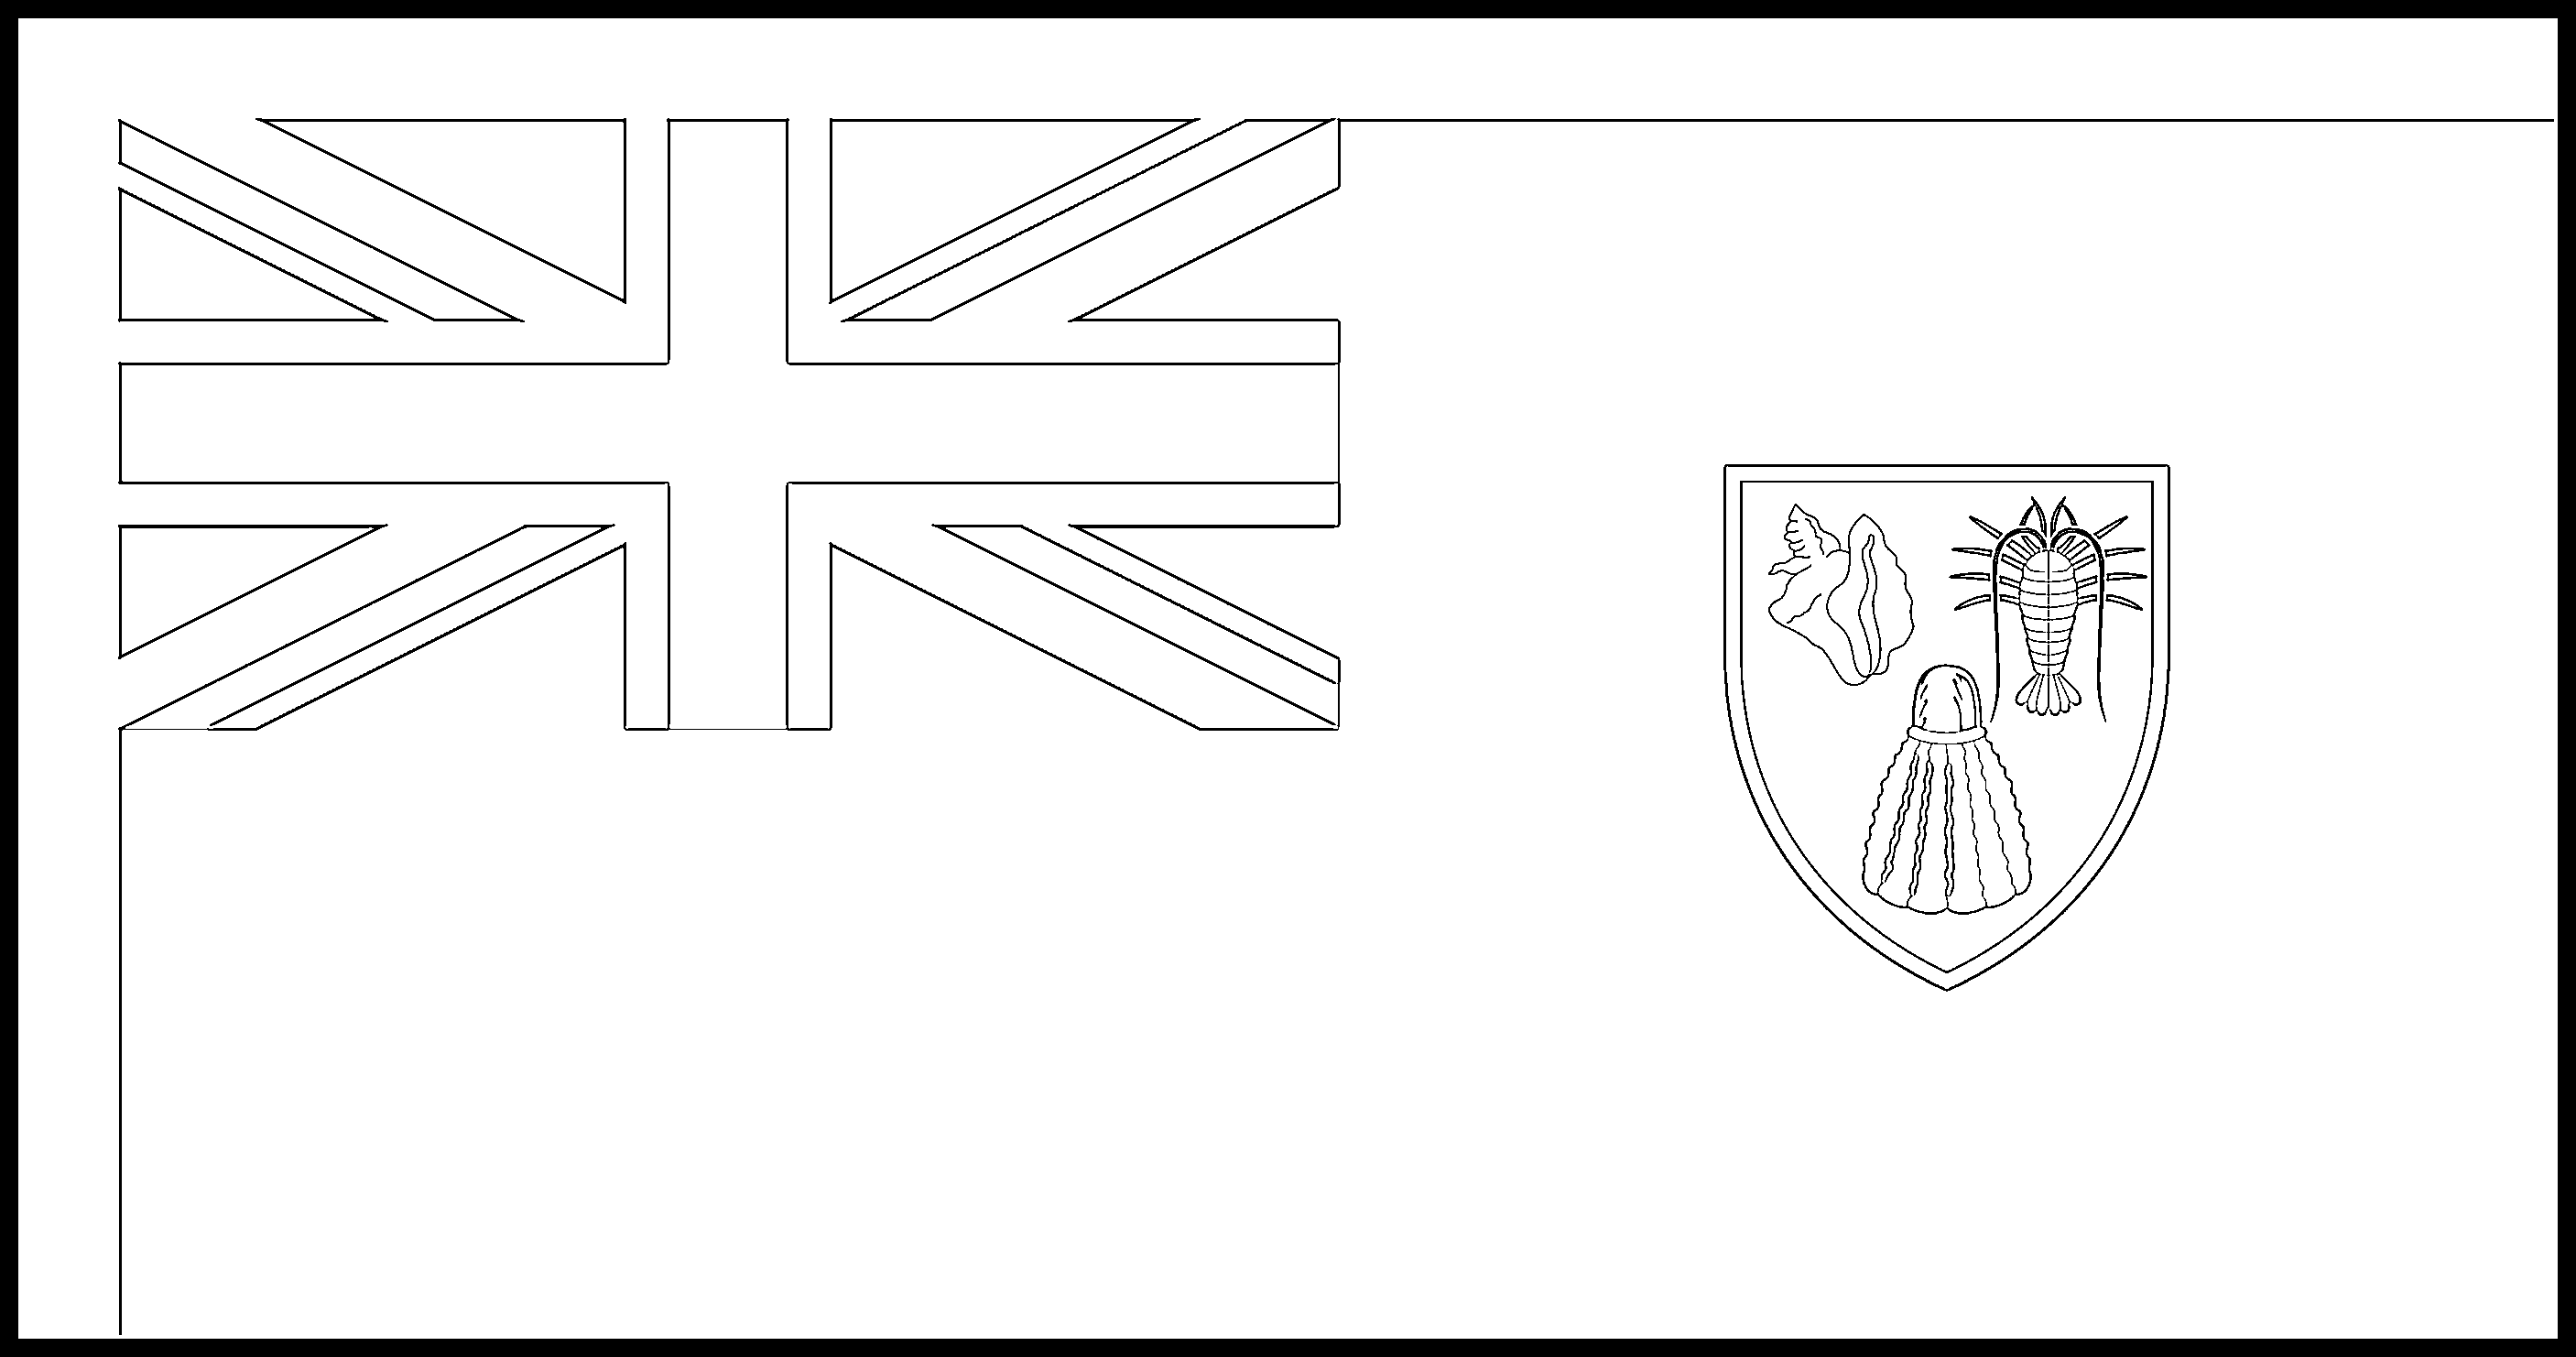 Turks_and_Caicos_Islands Flag Colouring Page